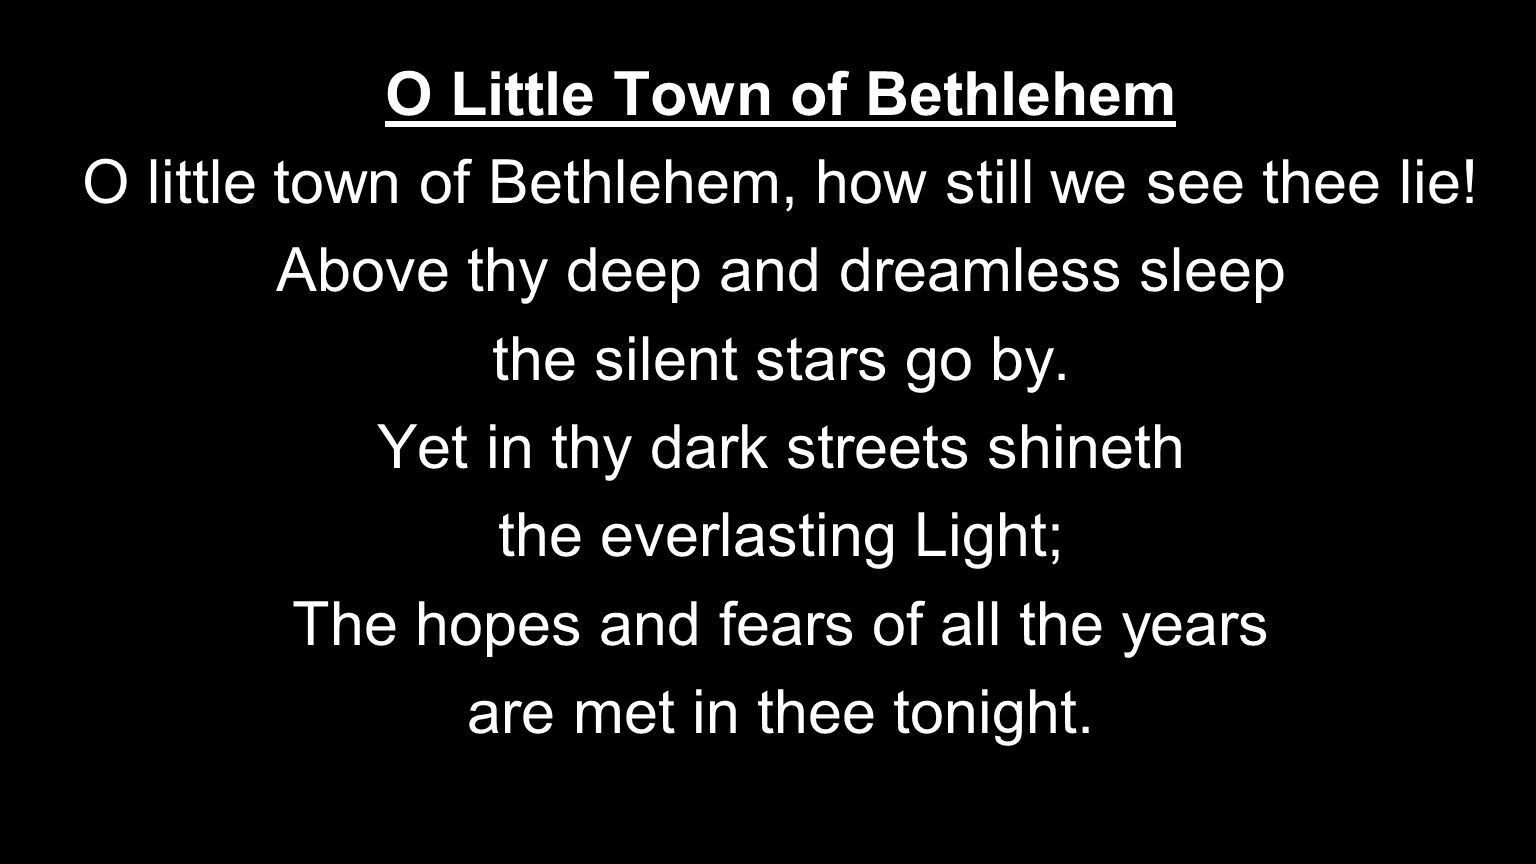 O Little Town of Bethlehem O little town of Bethlehem, how still we see thee lie! Above thy deep and dreamless sleep the silent stars go by. Yet in th